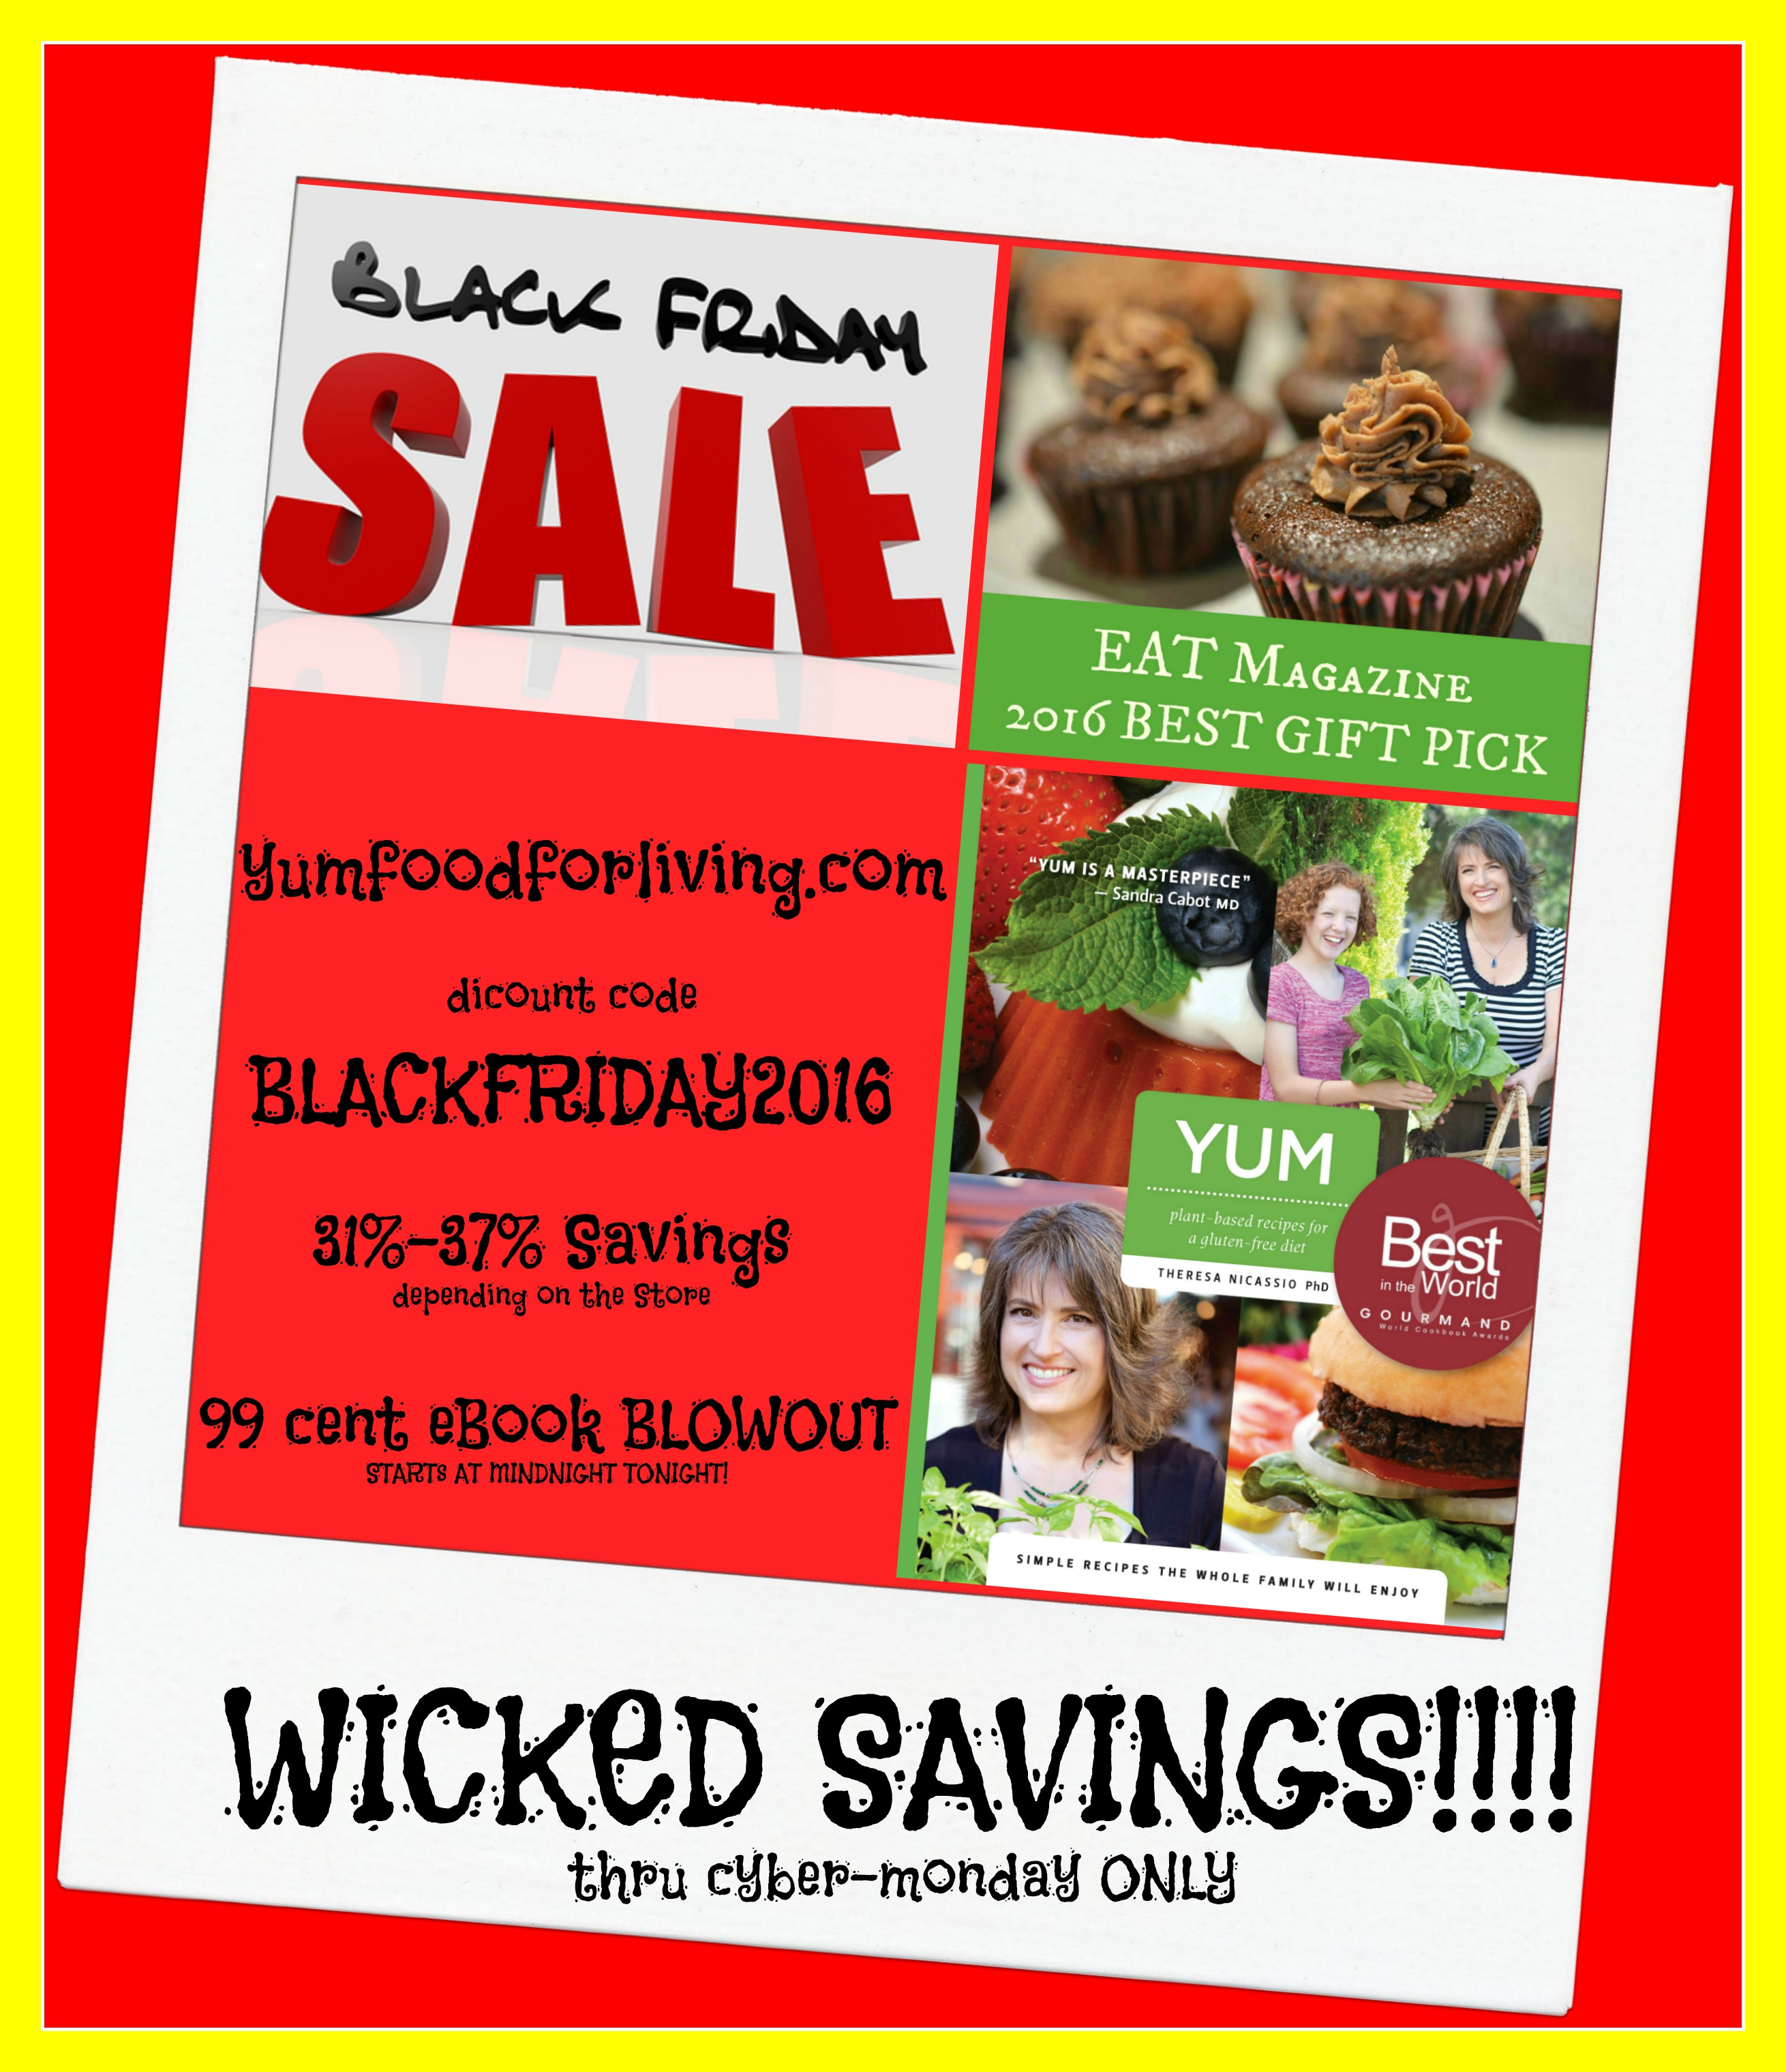 Black Friday - Cyber Monday Blowout Sale